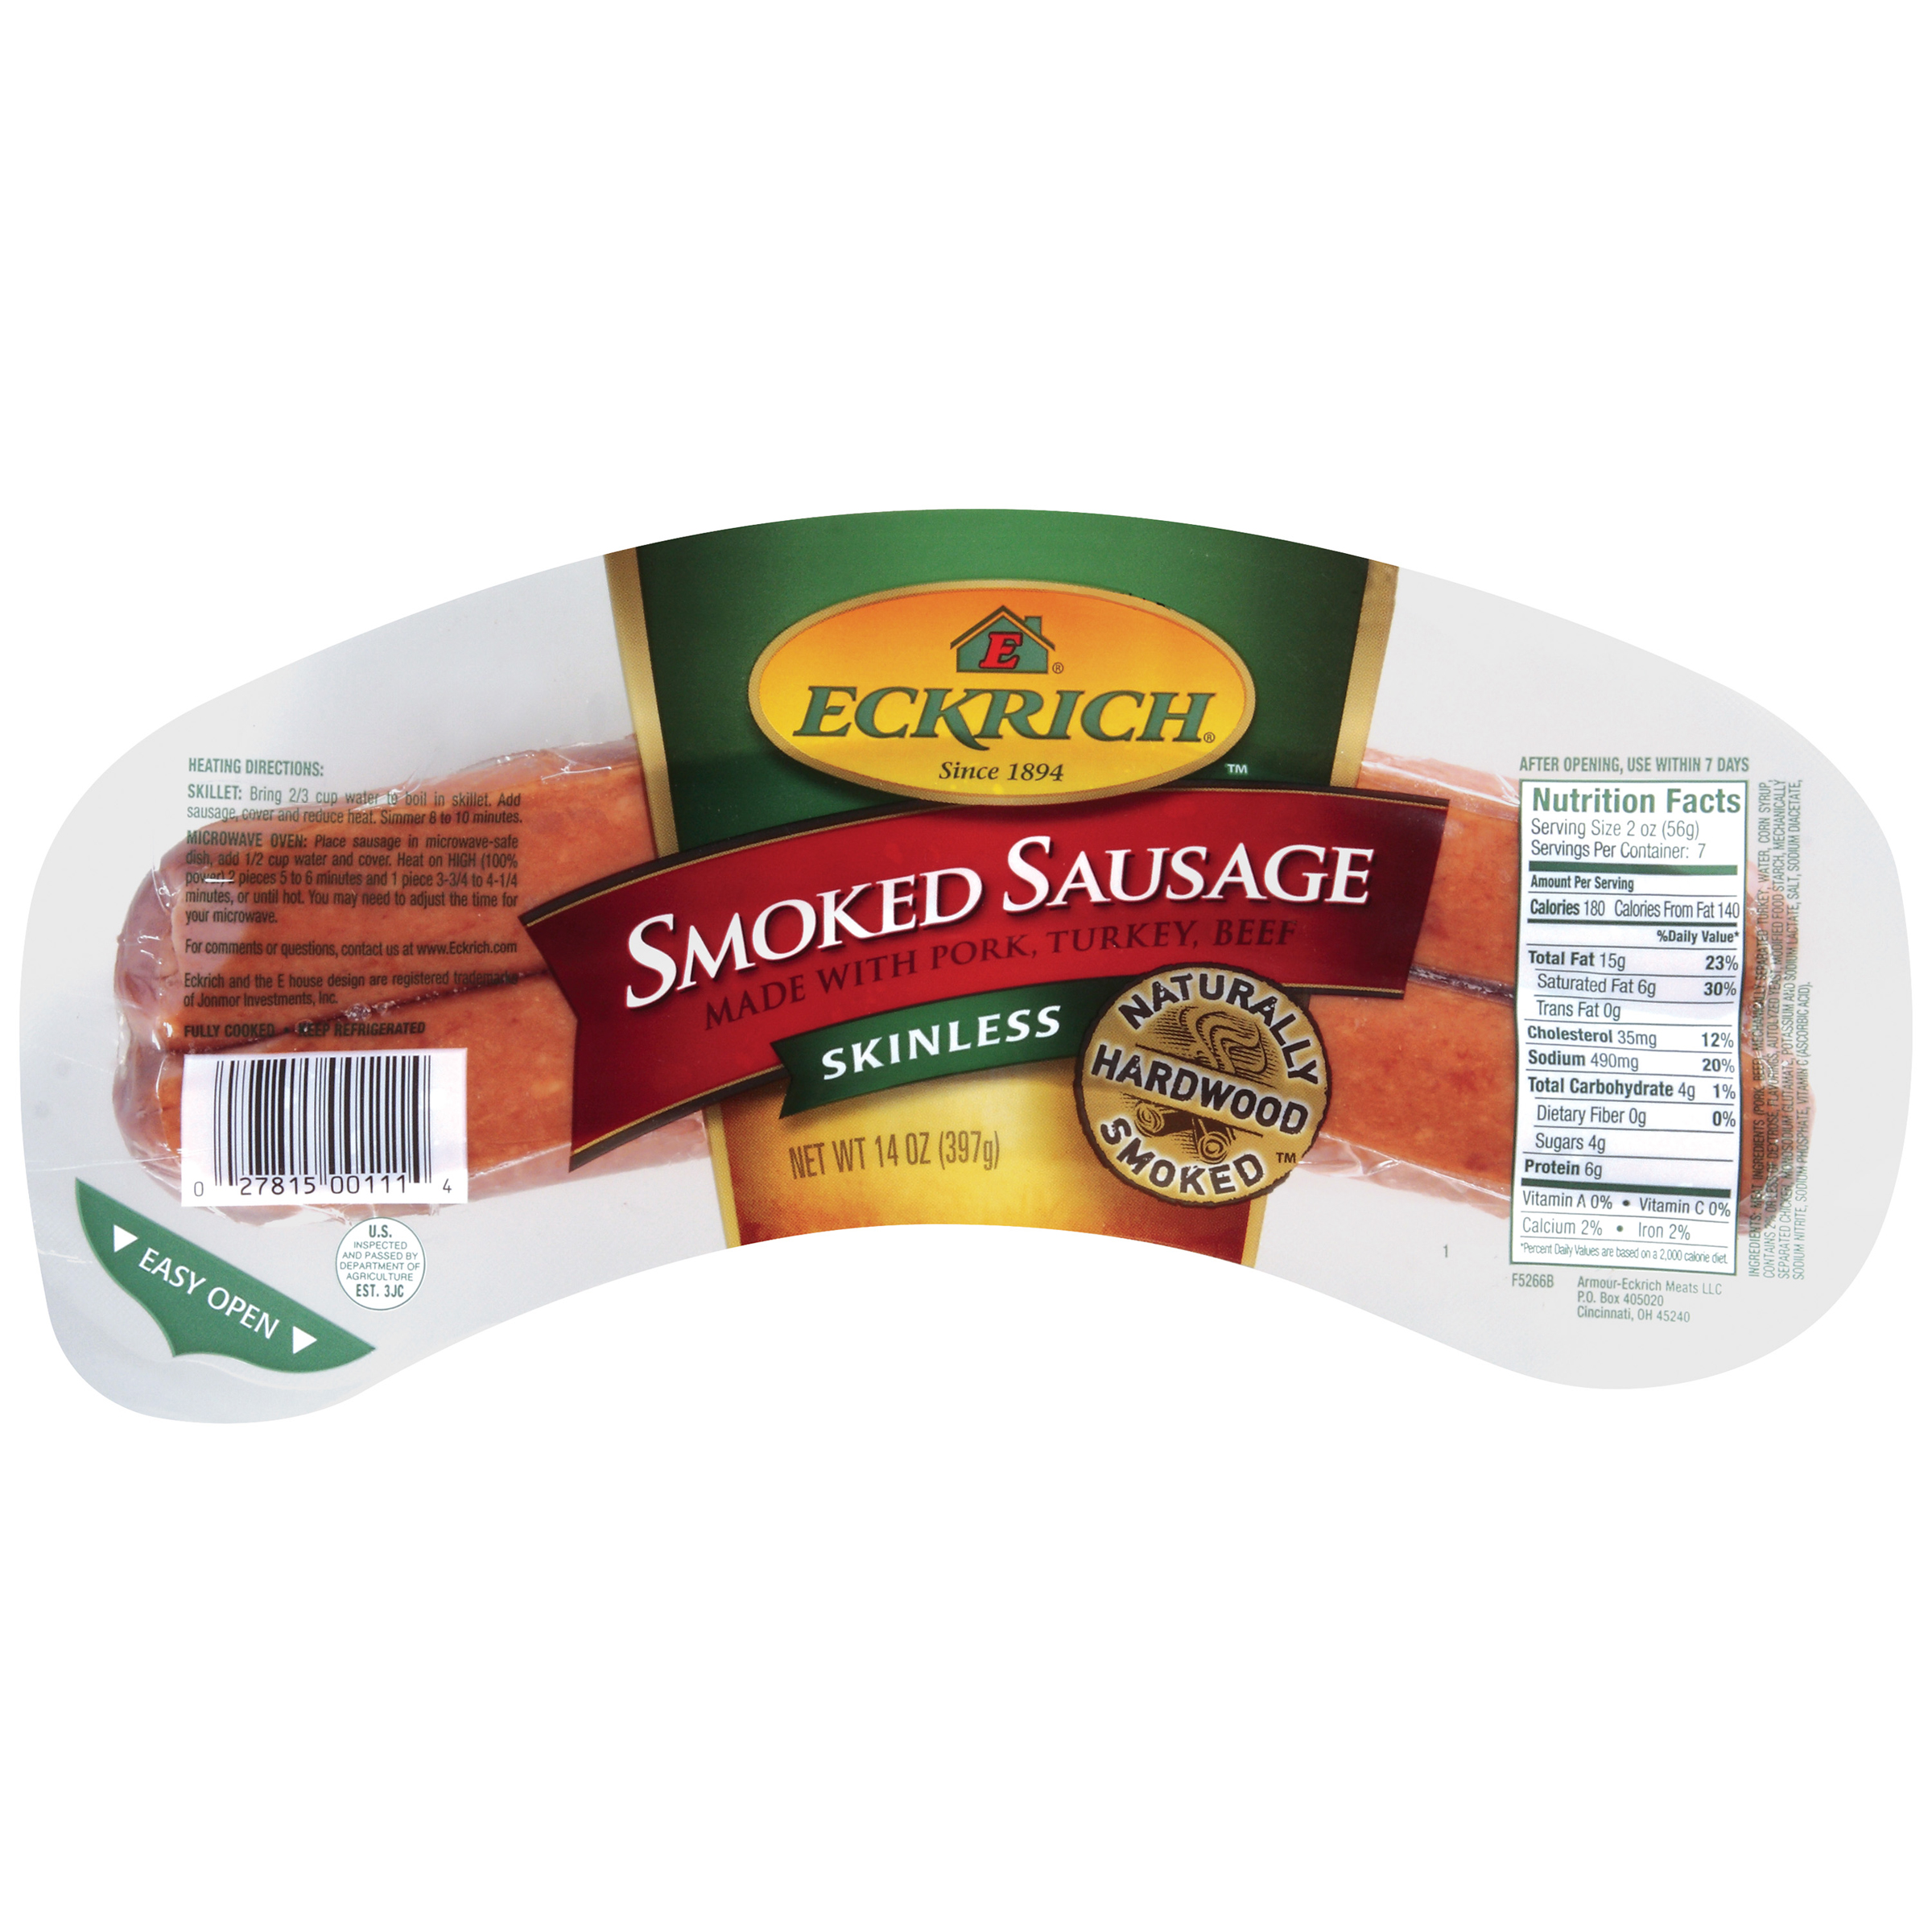 Eckrich Skinless Smoked Sausage 14 oz. by Armour-Eckrich Meats LLC